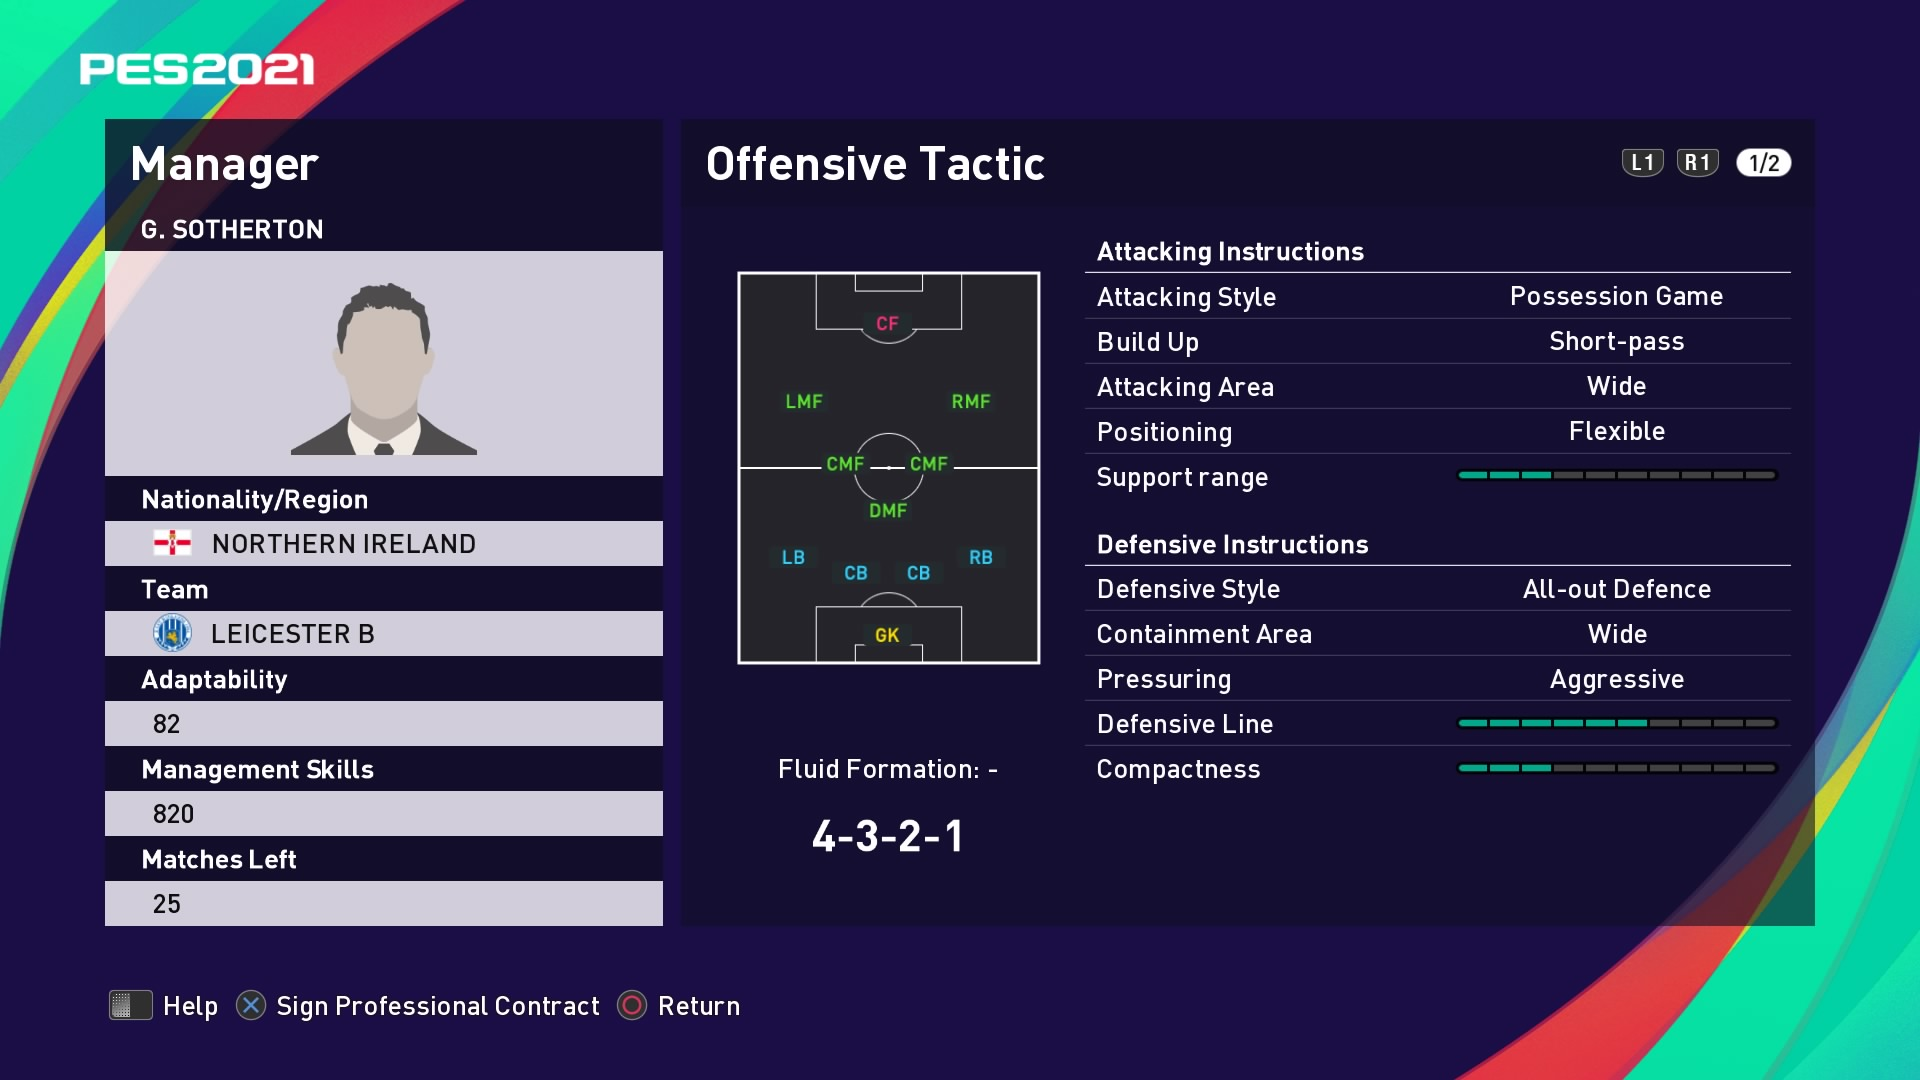 G. Sotherton (Brendan Rodgers) Offensive Tactic in PES 2021 myClub